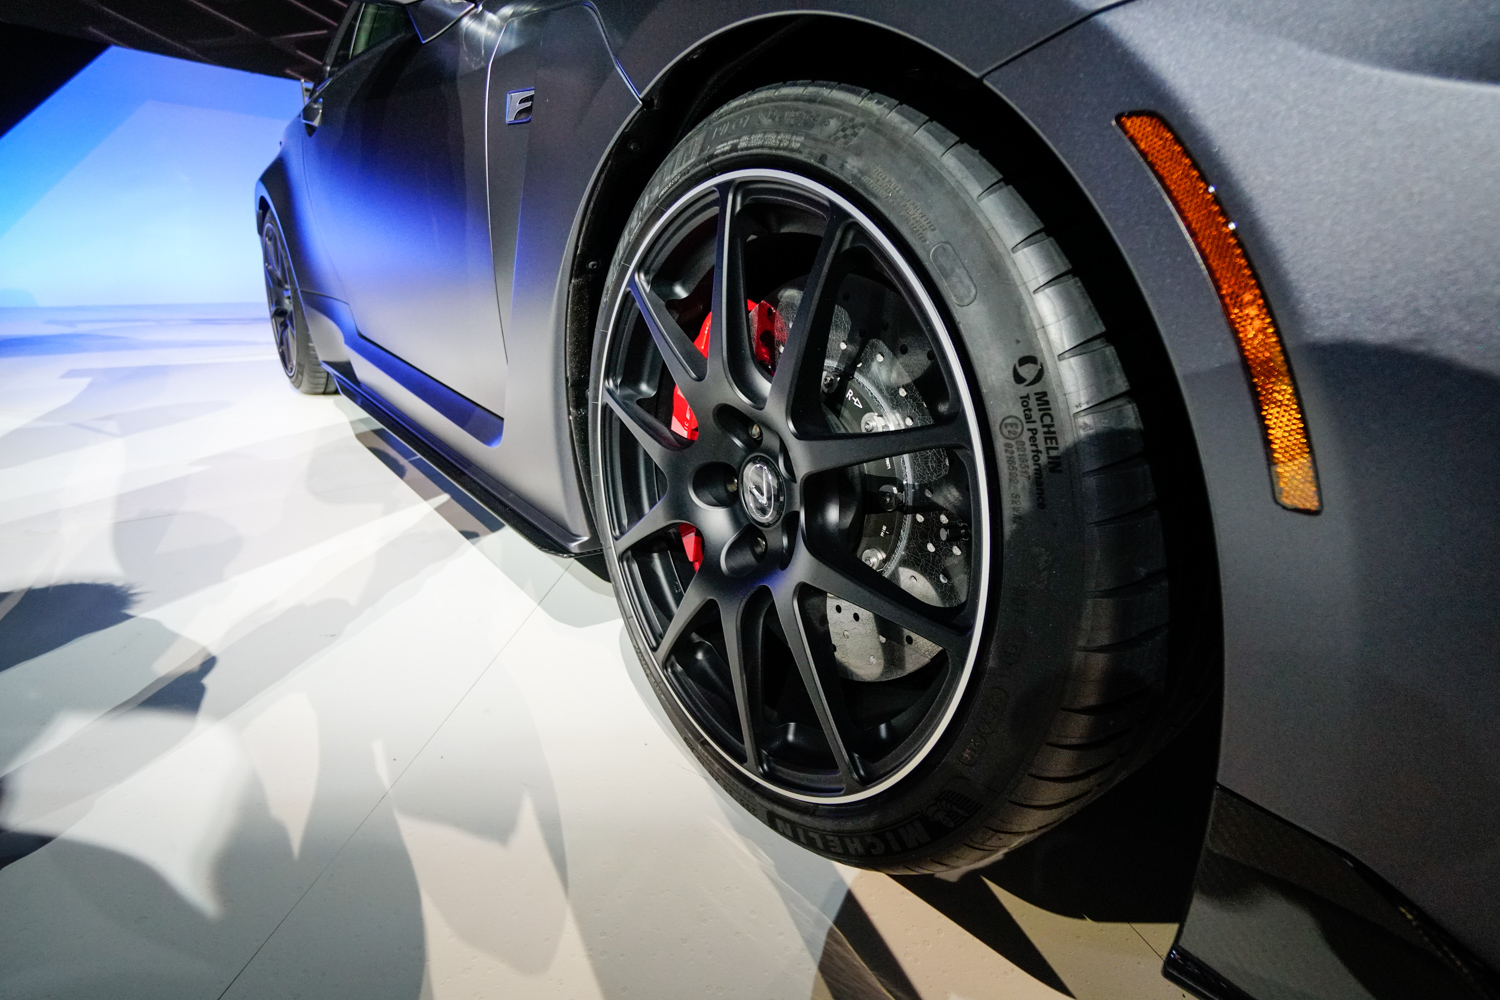 2020 Lexus RC F Track Edition wheel detail